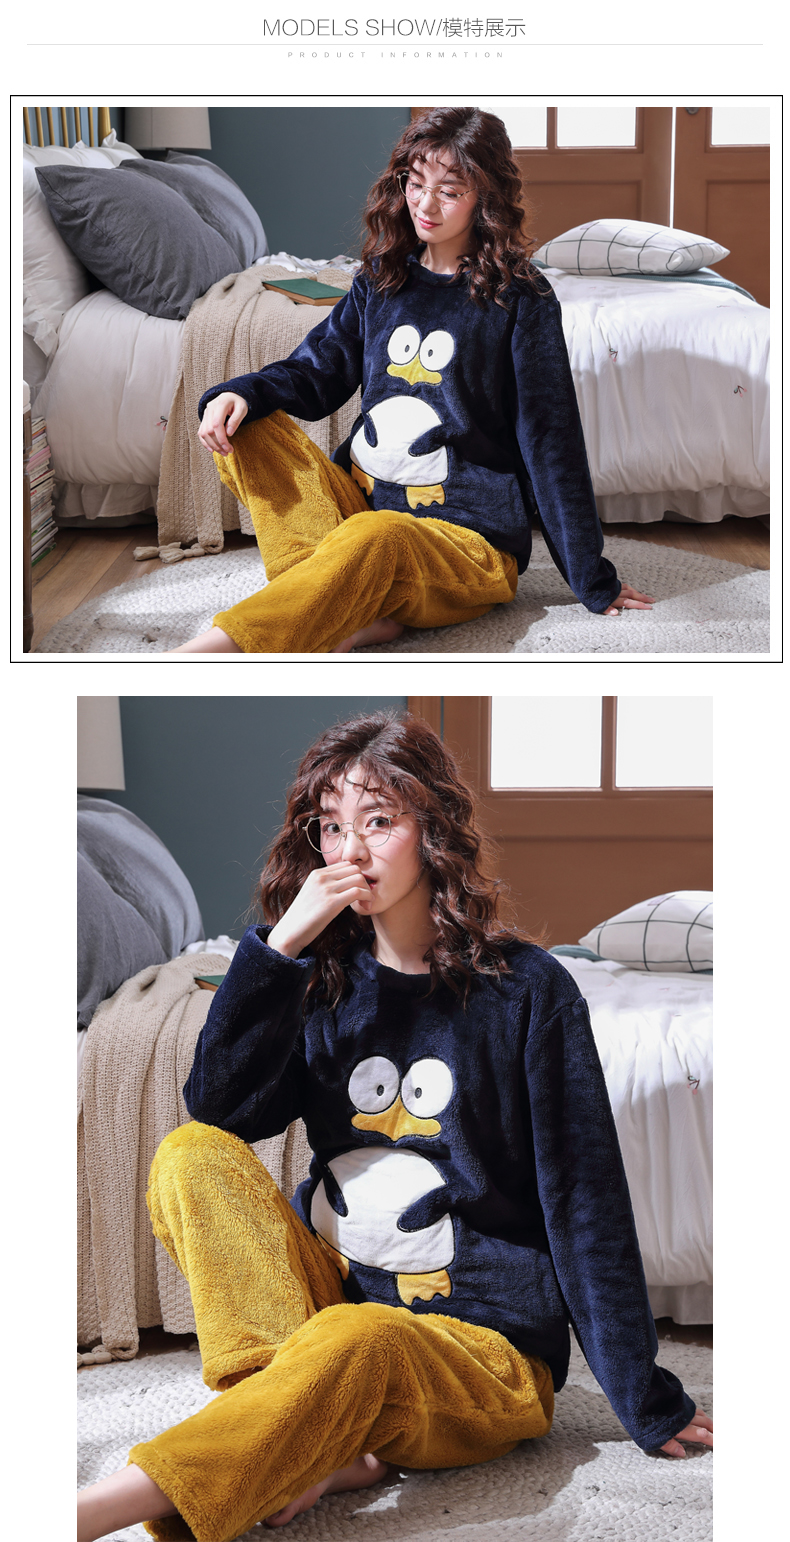 Long Sleeve Warm Flannel Pajamas Winter Women Pajama Sets Print Thicken Sleepwear Pyjamas Plus Size 3XL 4XL 5XL 85kg Nightwear 323